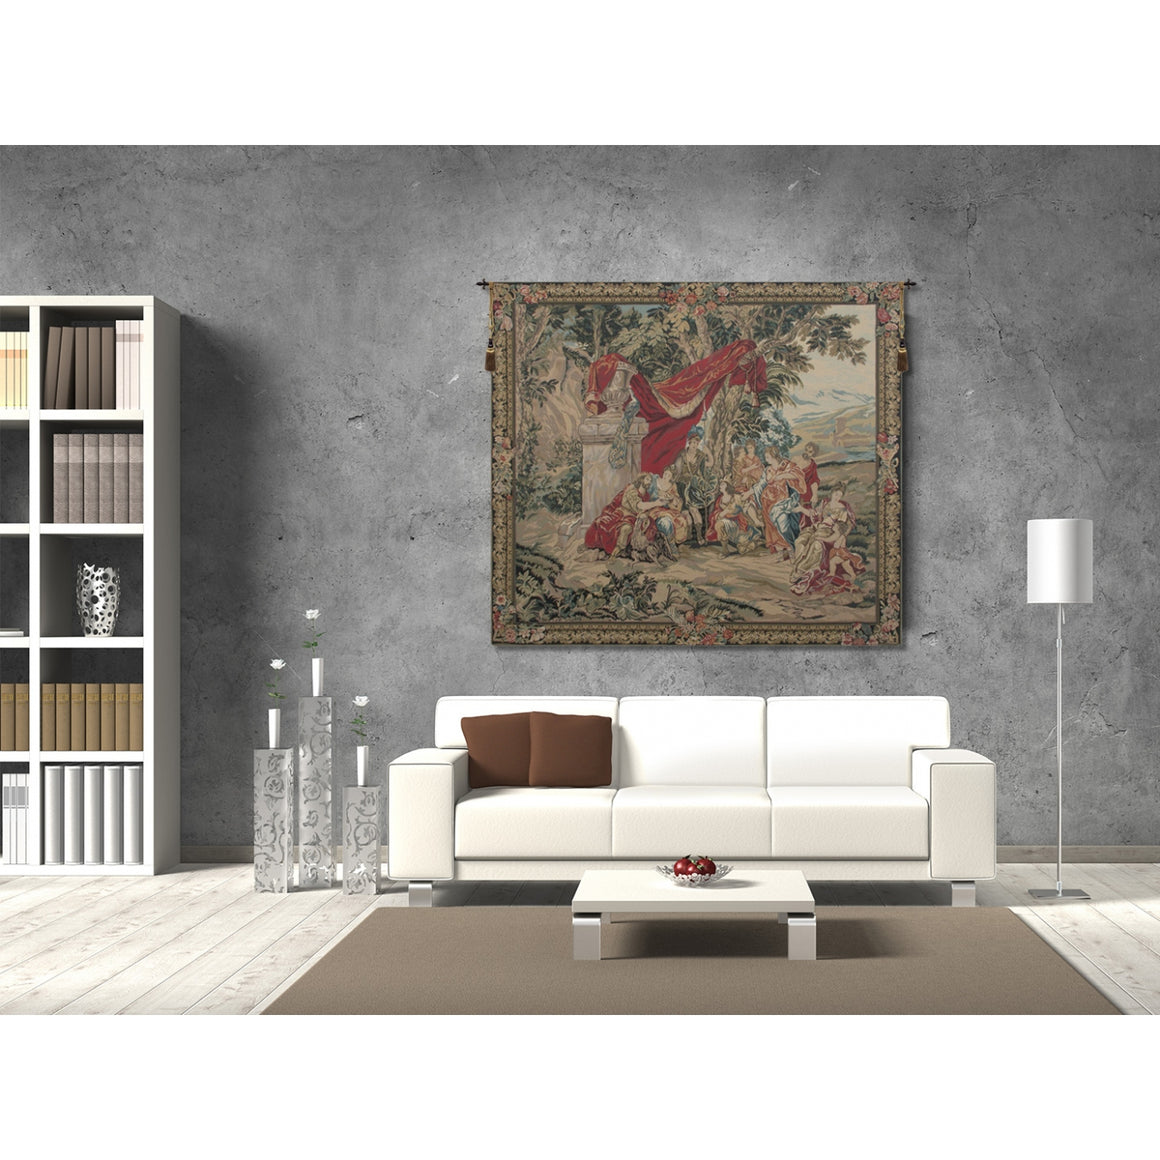 Large Jupiter Wall Hanging Tapestry